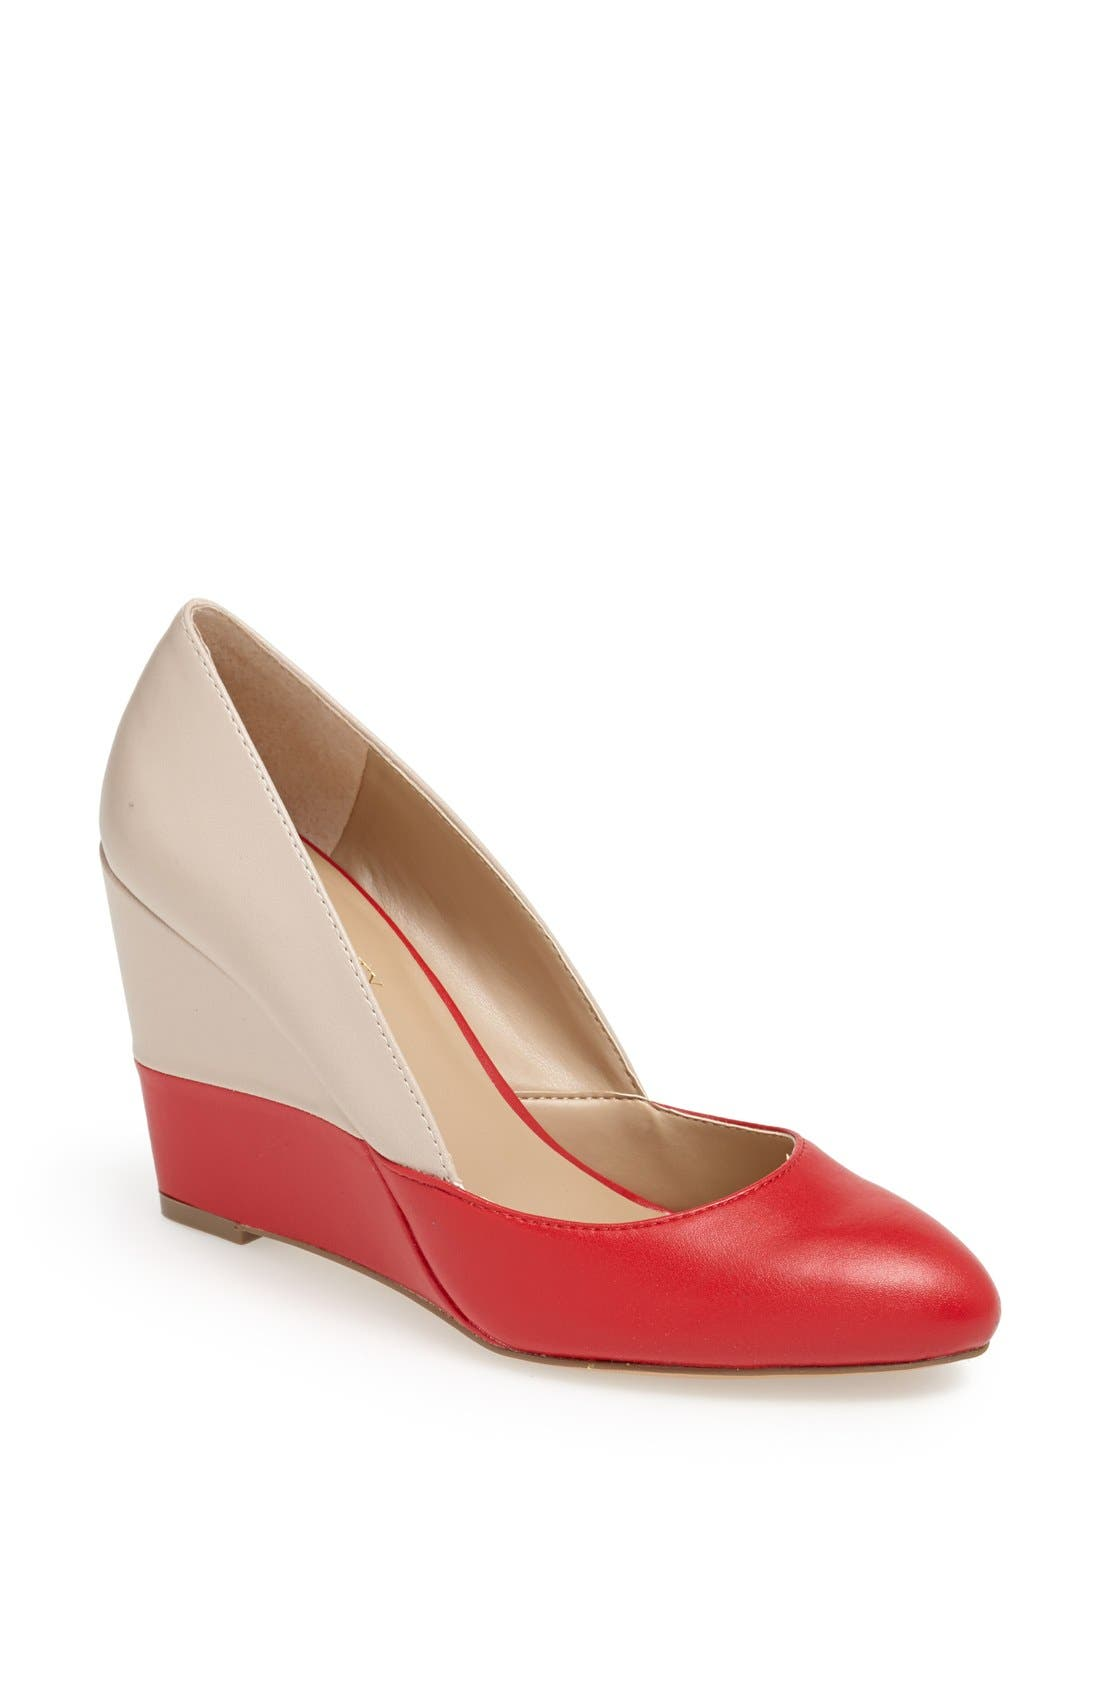 Alternate Image 1 Selected - Sole Society 'Maile' Pump